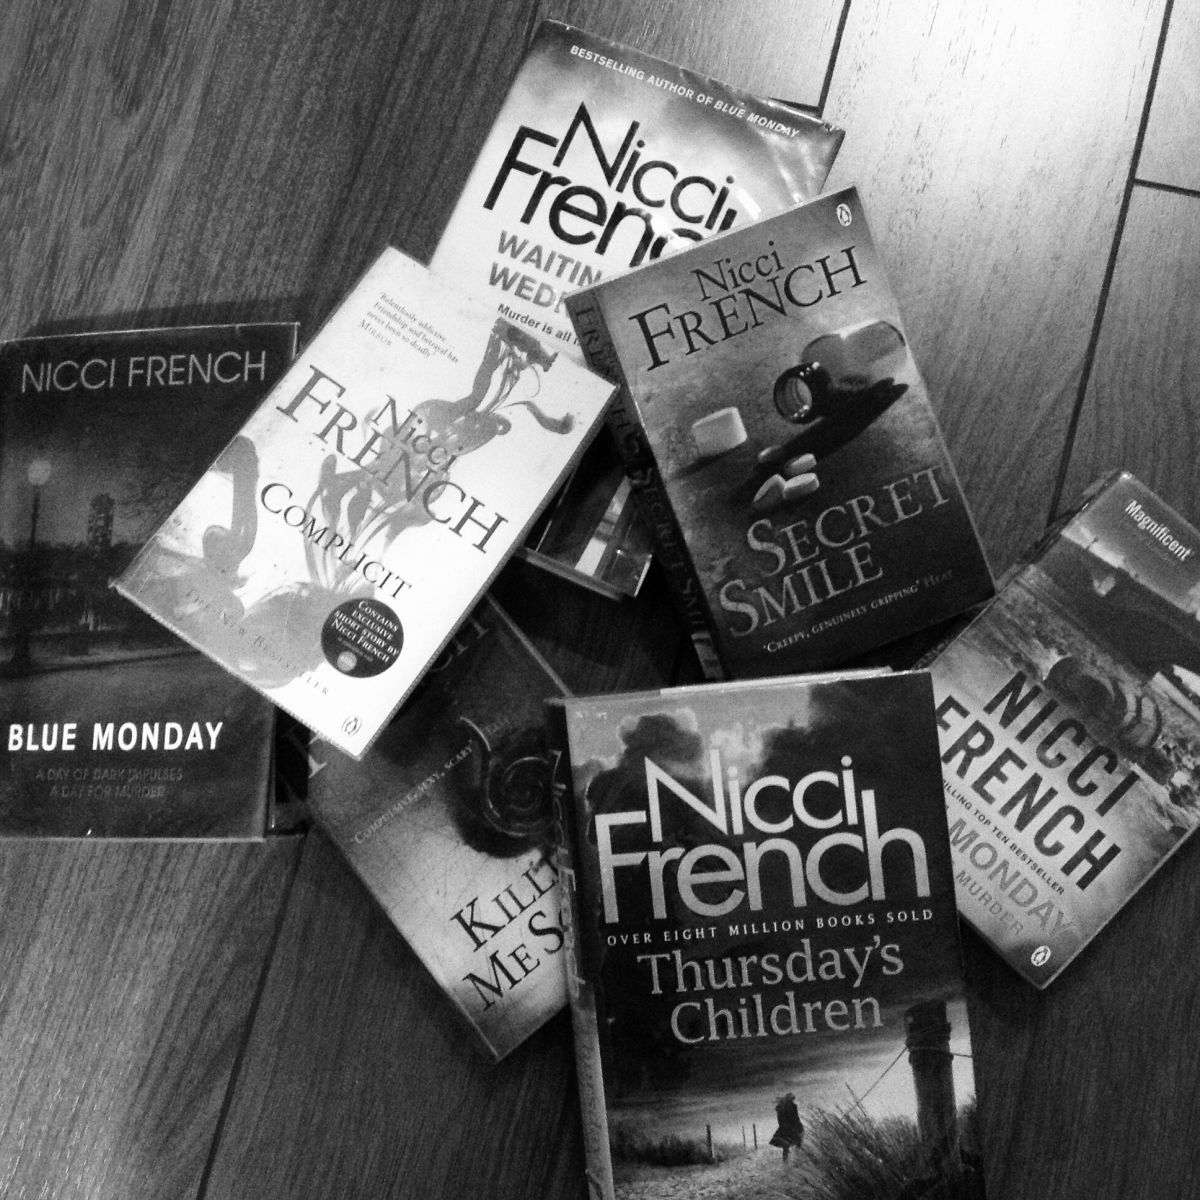 Nicci French books